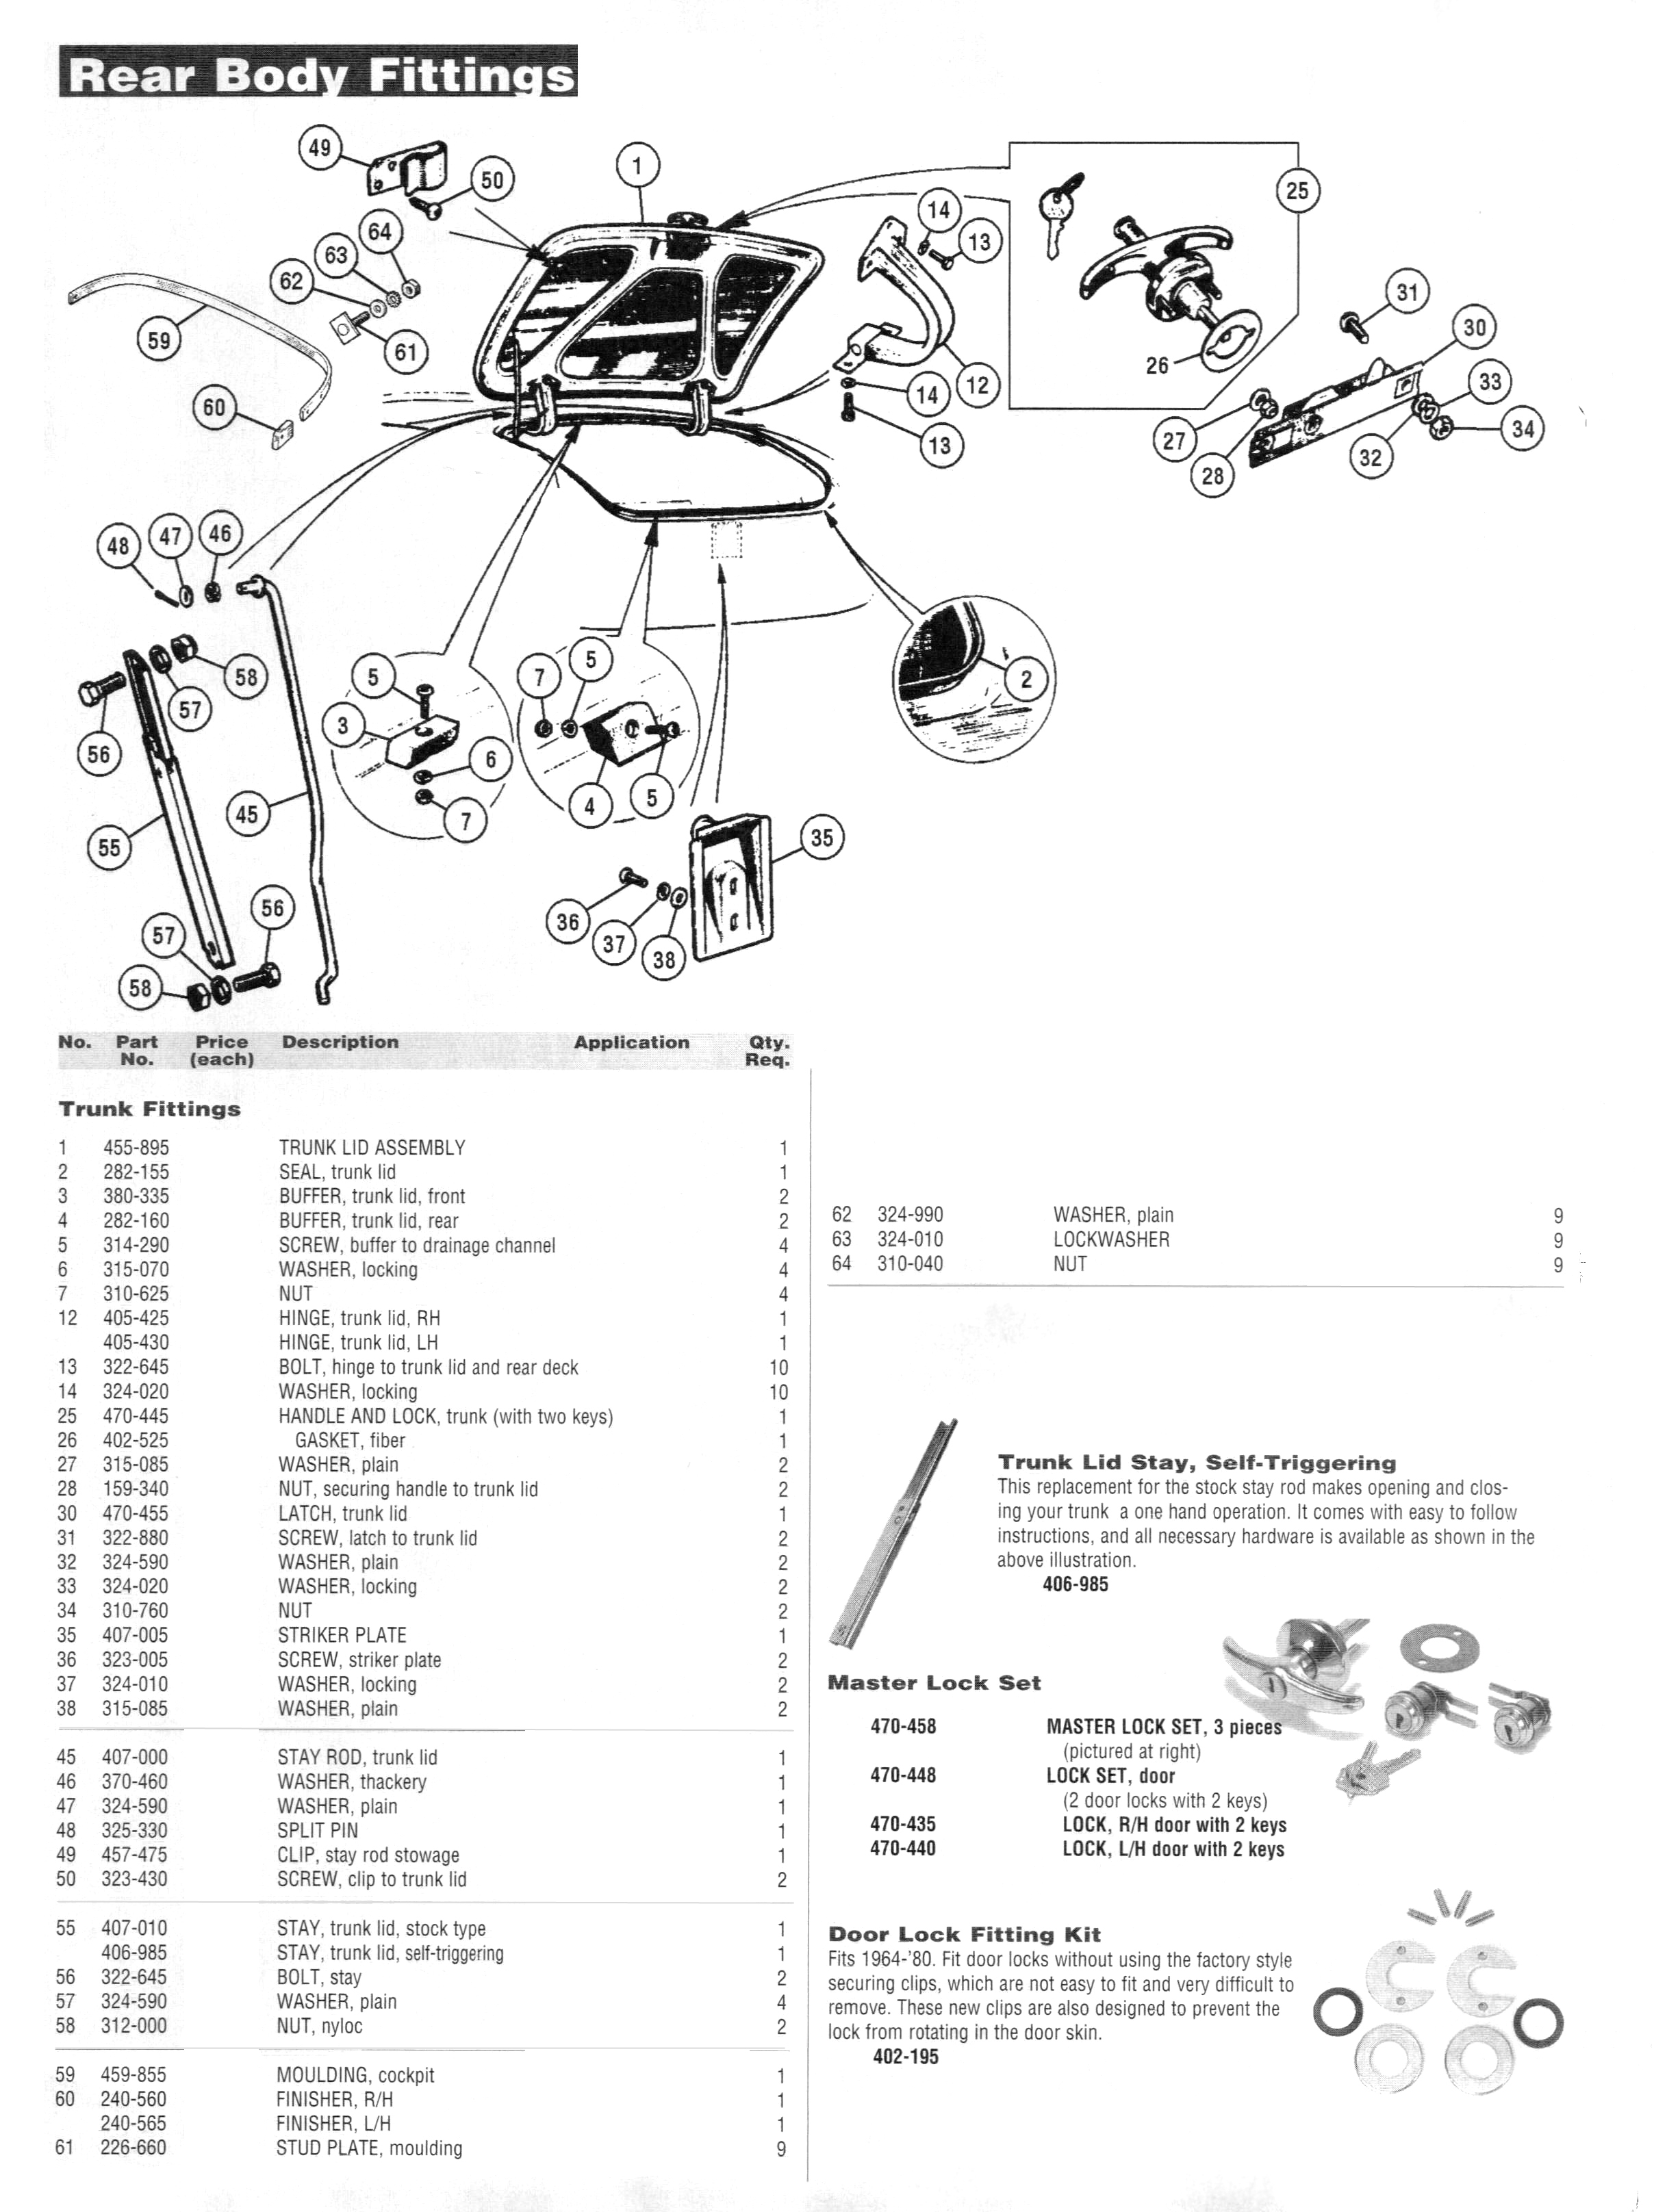 Clenet Parts And Accessories